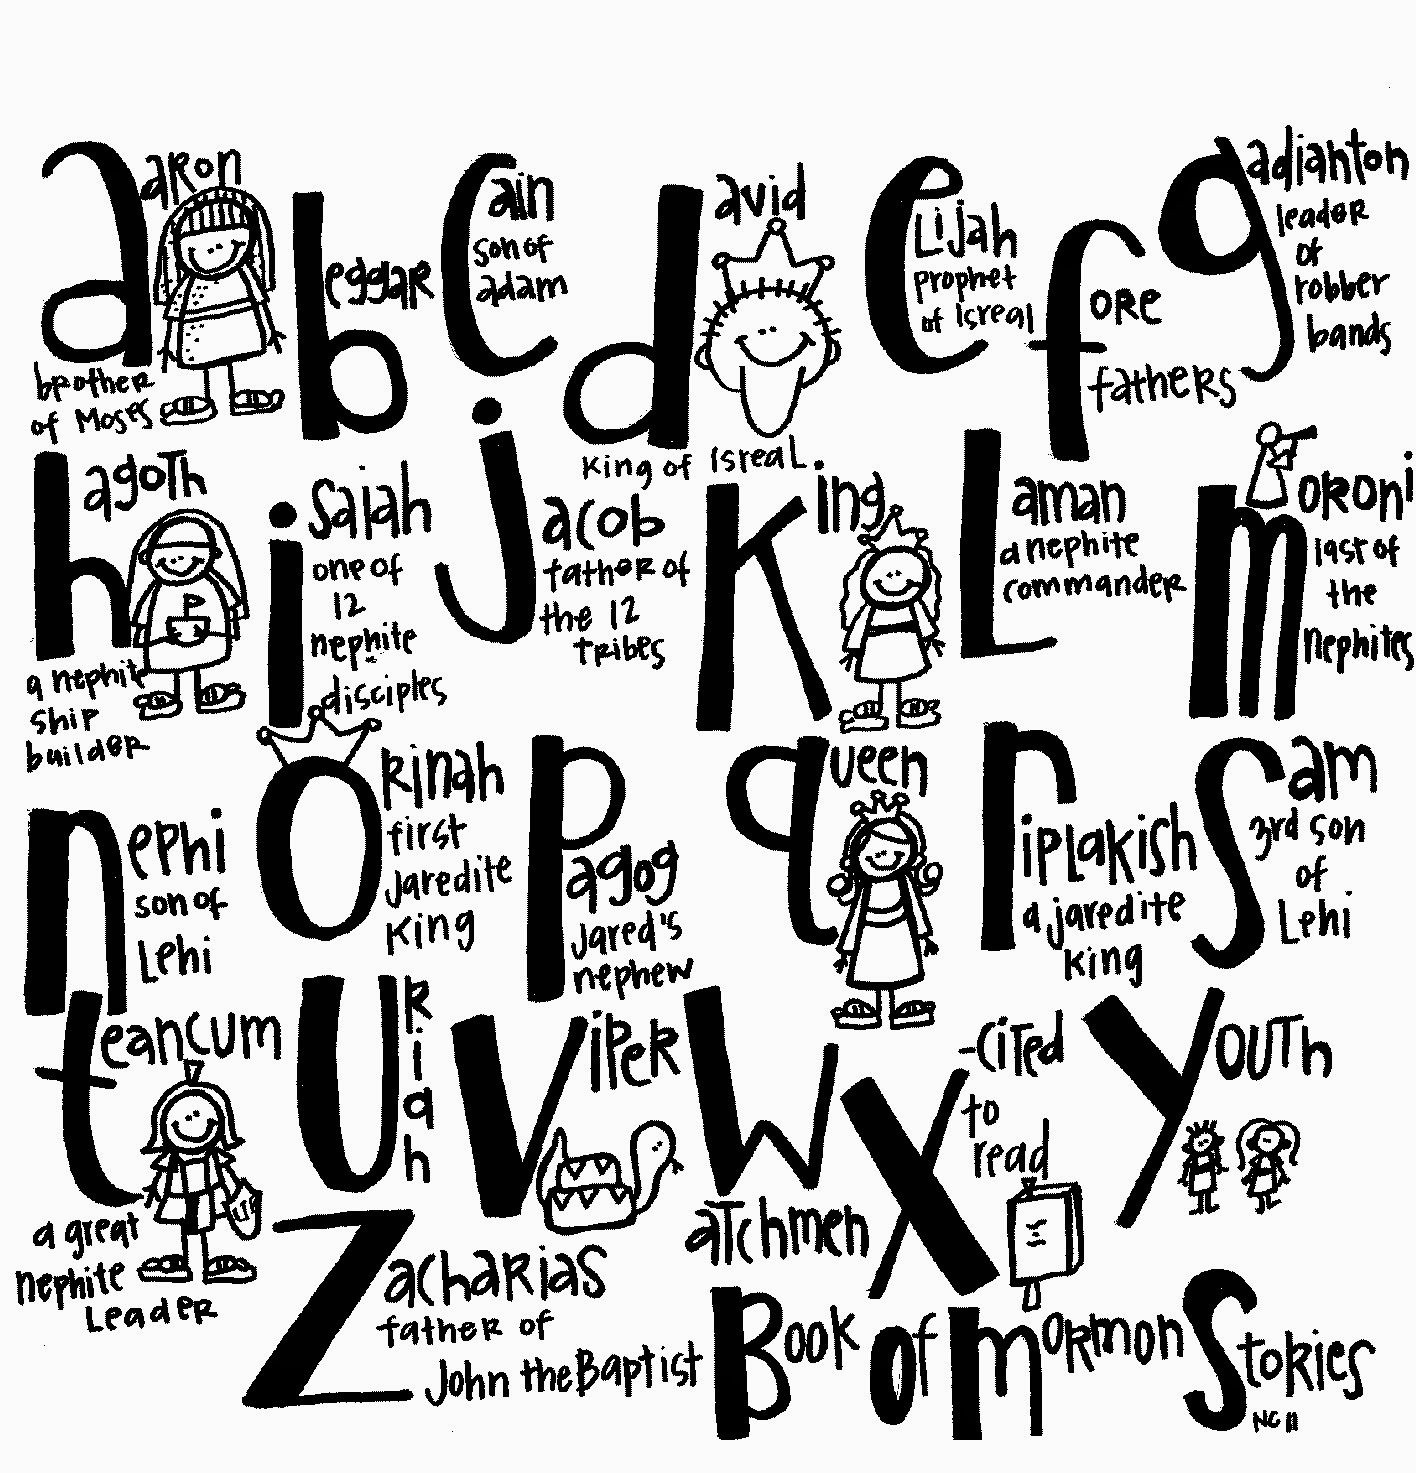 clipart of the book of mormon - photo #18